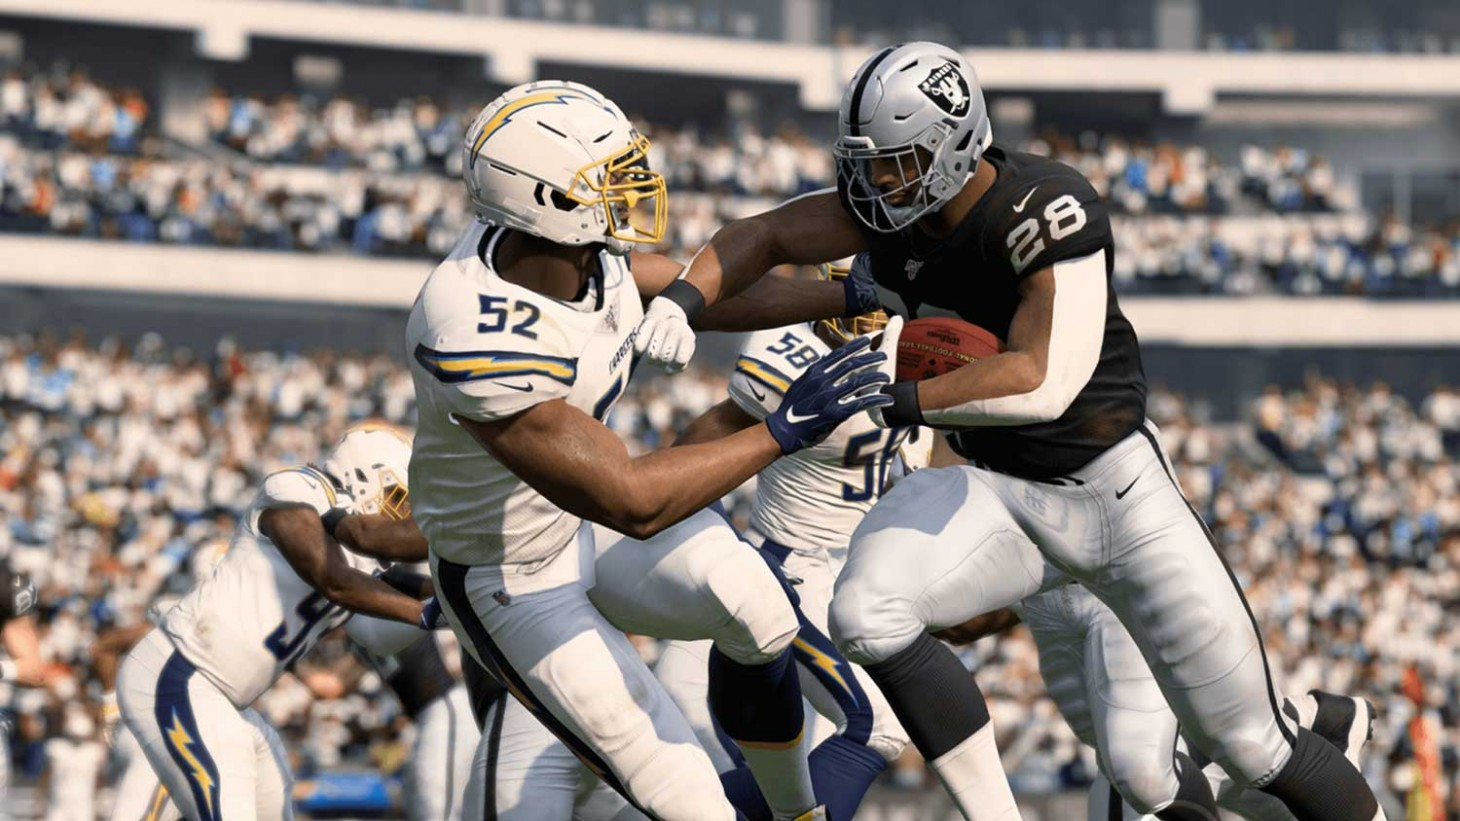 A screenshot from Madden NFL 20 on Xbox One